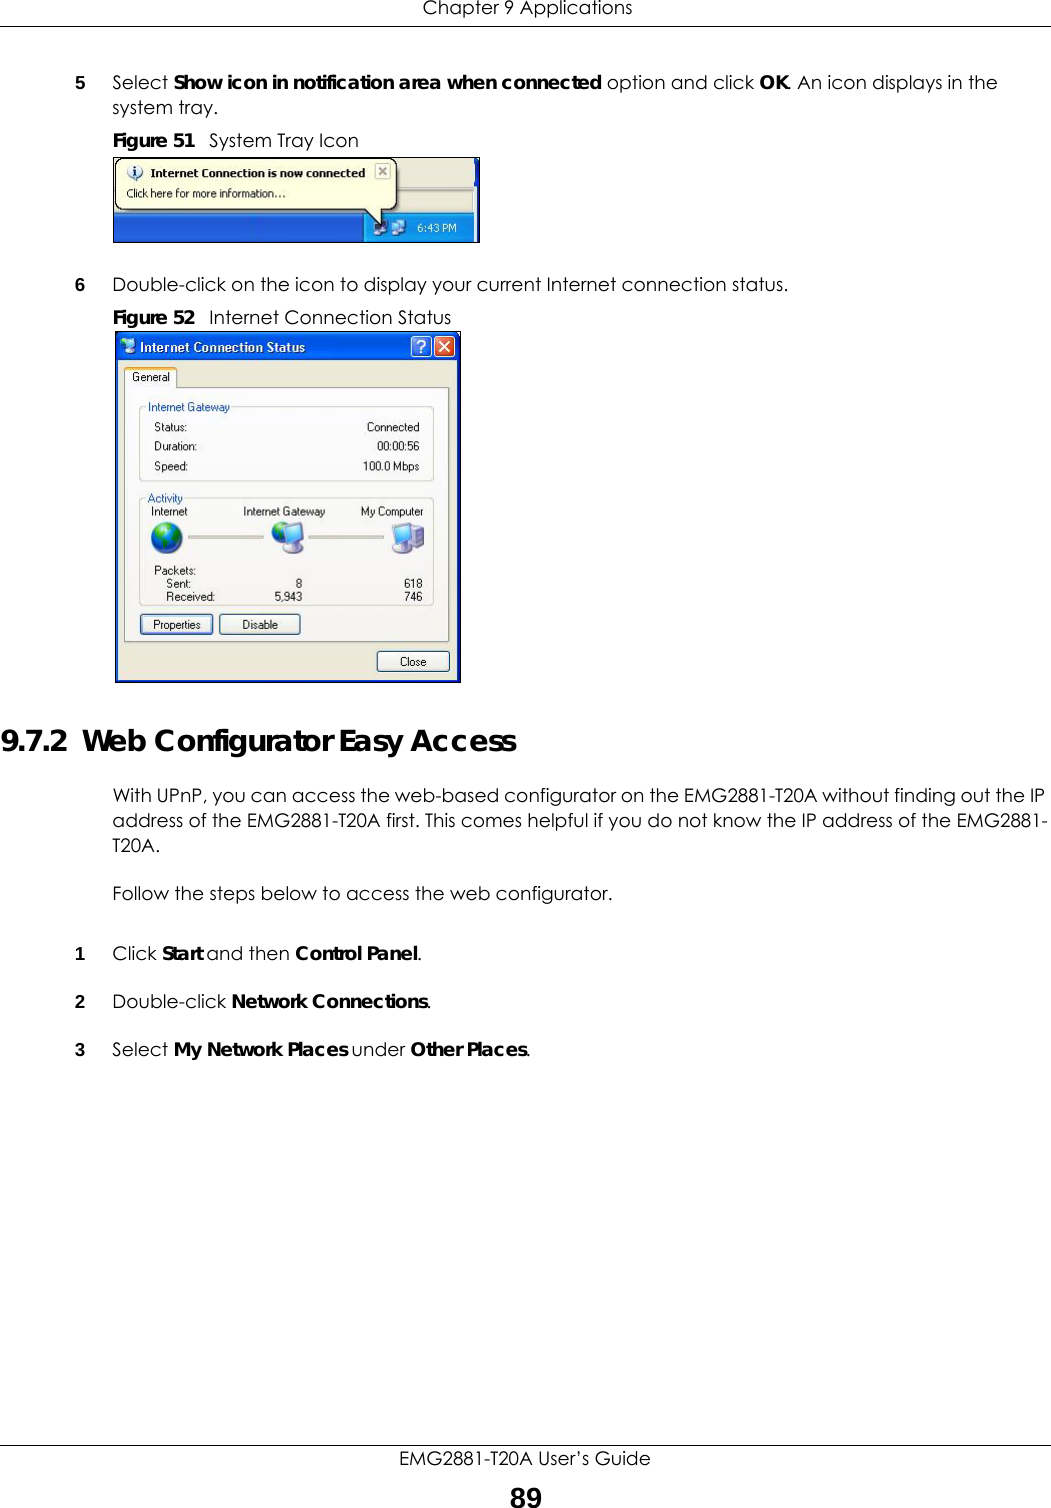 Chapter 9 ApplicationsEMG2881-T20A User's Guide895Select Show icon in notification area when connected option and click OK. An icon displays in the system tray. Figure 51   System Tray Icon6Double-click on the icon to display your current Internet connection status.Figure 52   Internet Connection Status9.7.2  Web Configurator Easy AccessWith UPnP, you can access the web-based configurator on the EMG2881-T20A without finding out the IP address of the EMG2881-T20A first. This comes helpful if you do not know the IP address of the EMG2881-T20A.Follow the steps below to access the web configurator.1Click Start and then Control Panel. 2Double-click Network Connections. 3Select My Network Places under Other Places.